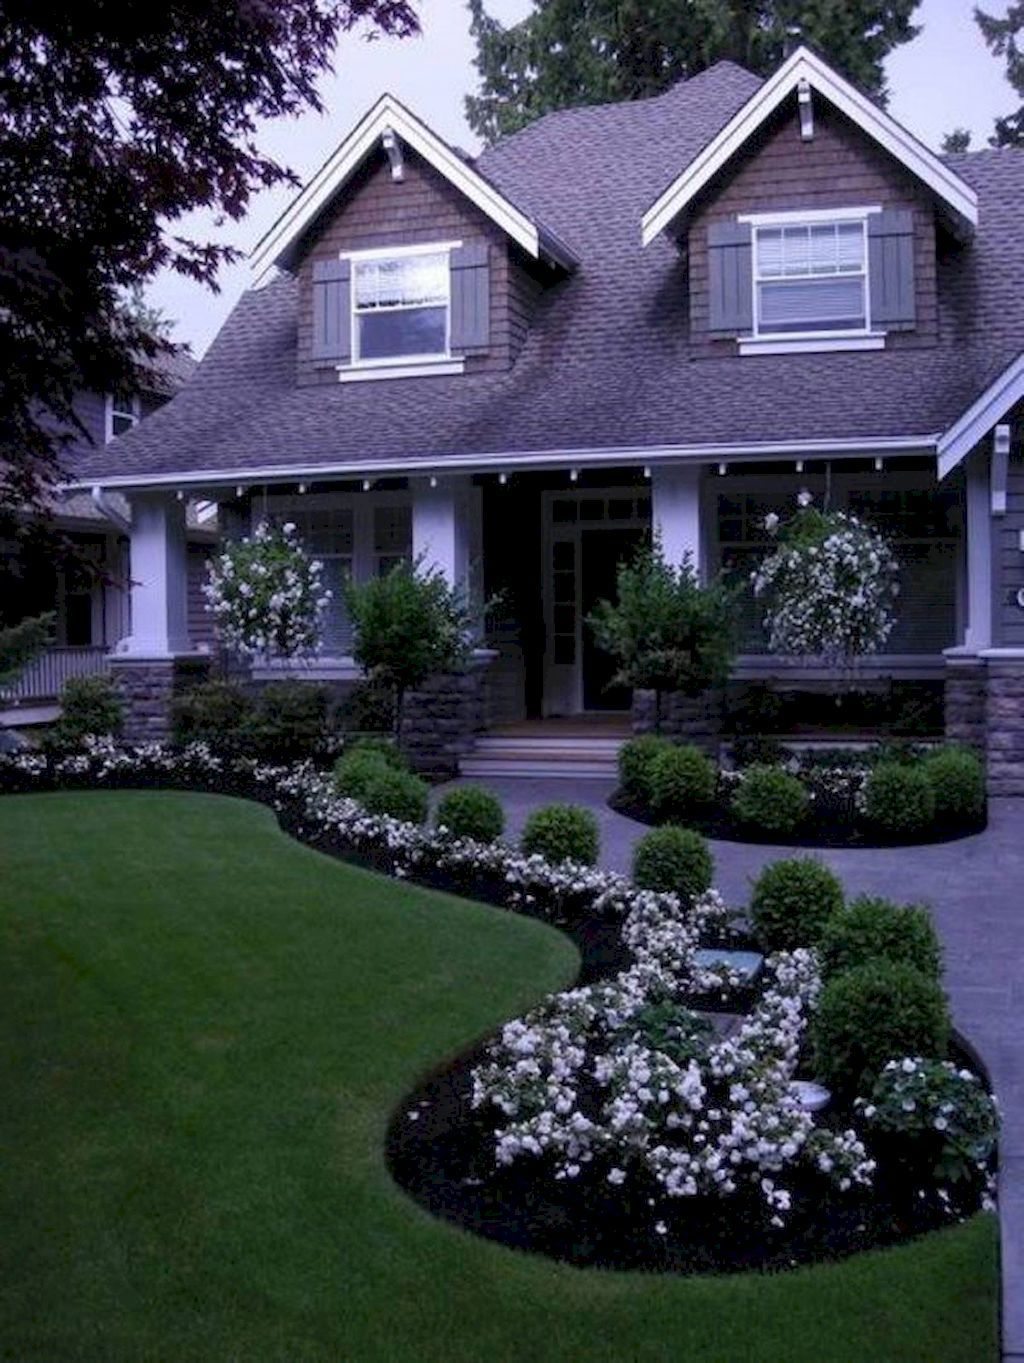 40 beautiful front yard landscaping ideas yard for Front lawn design